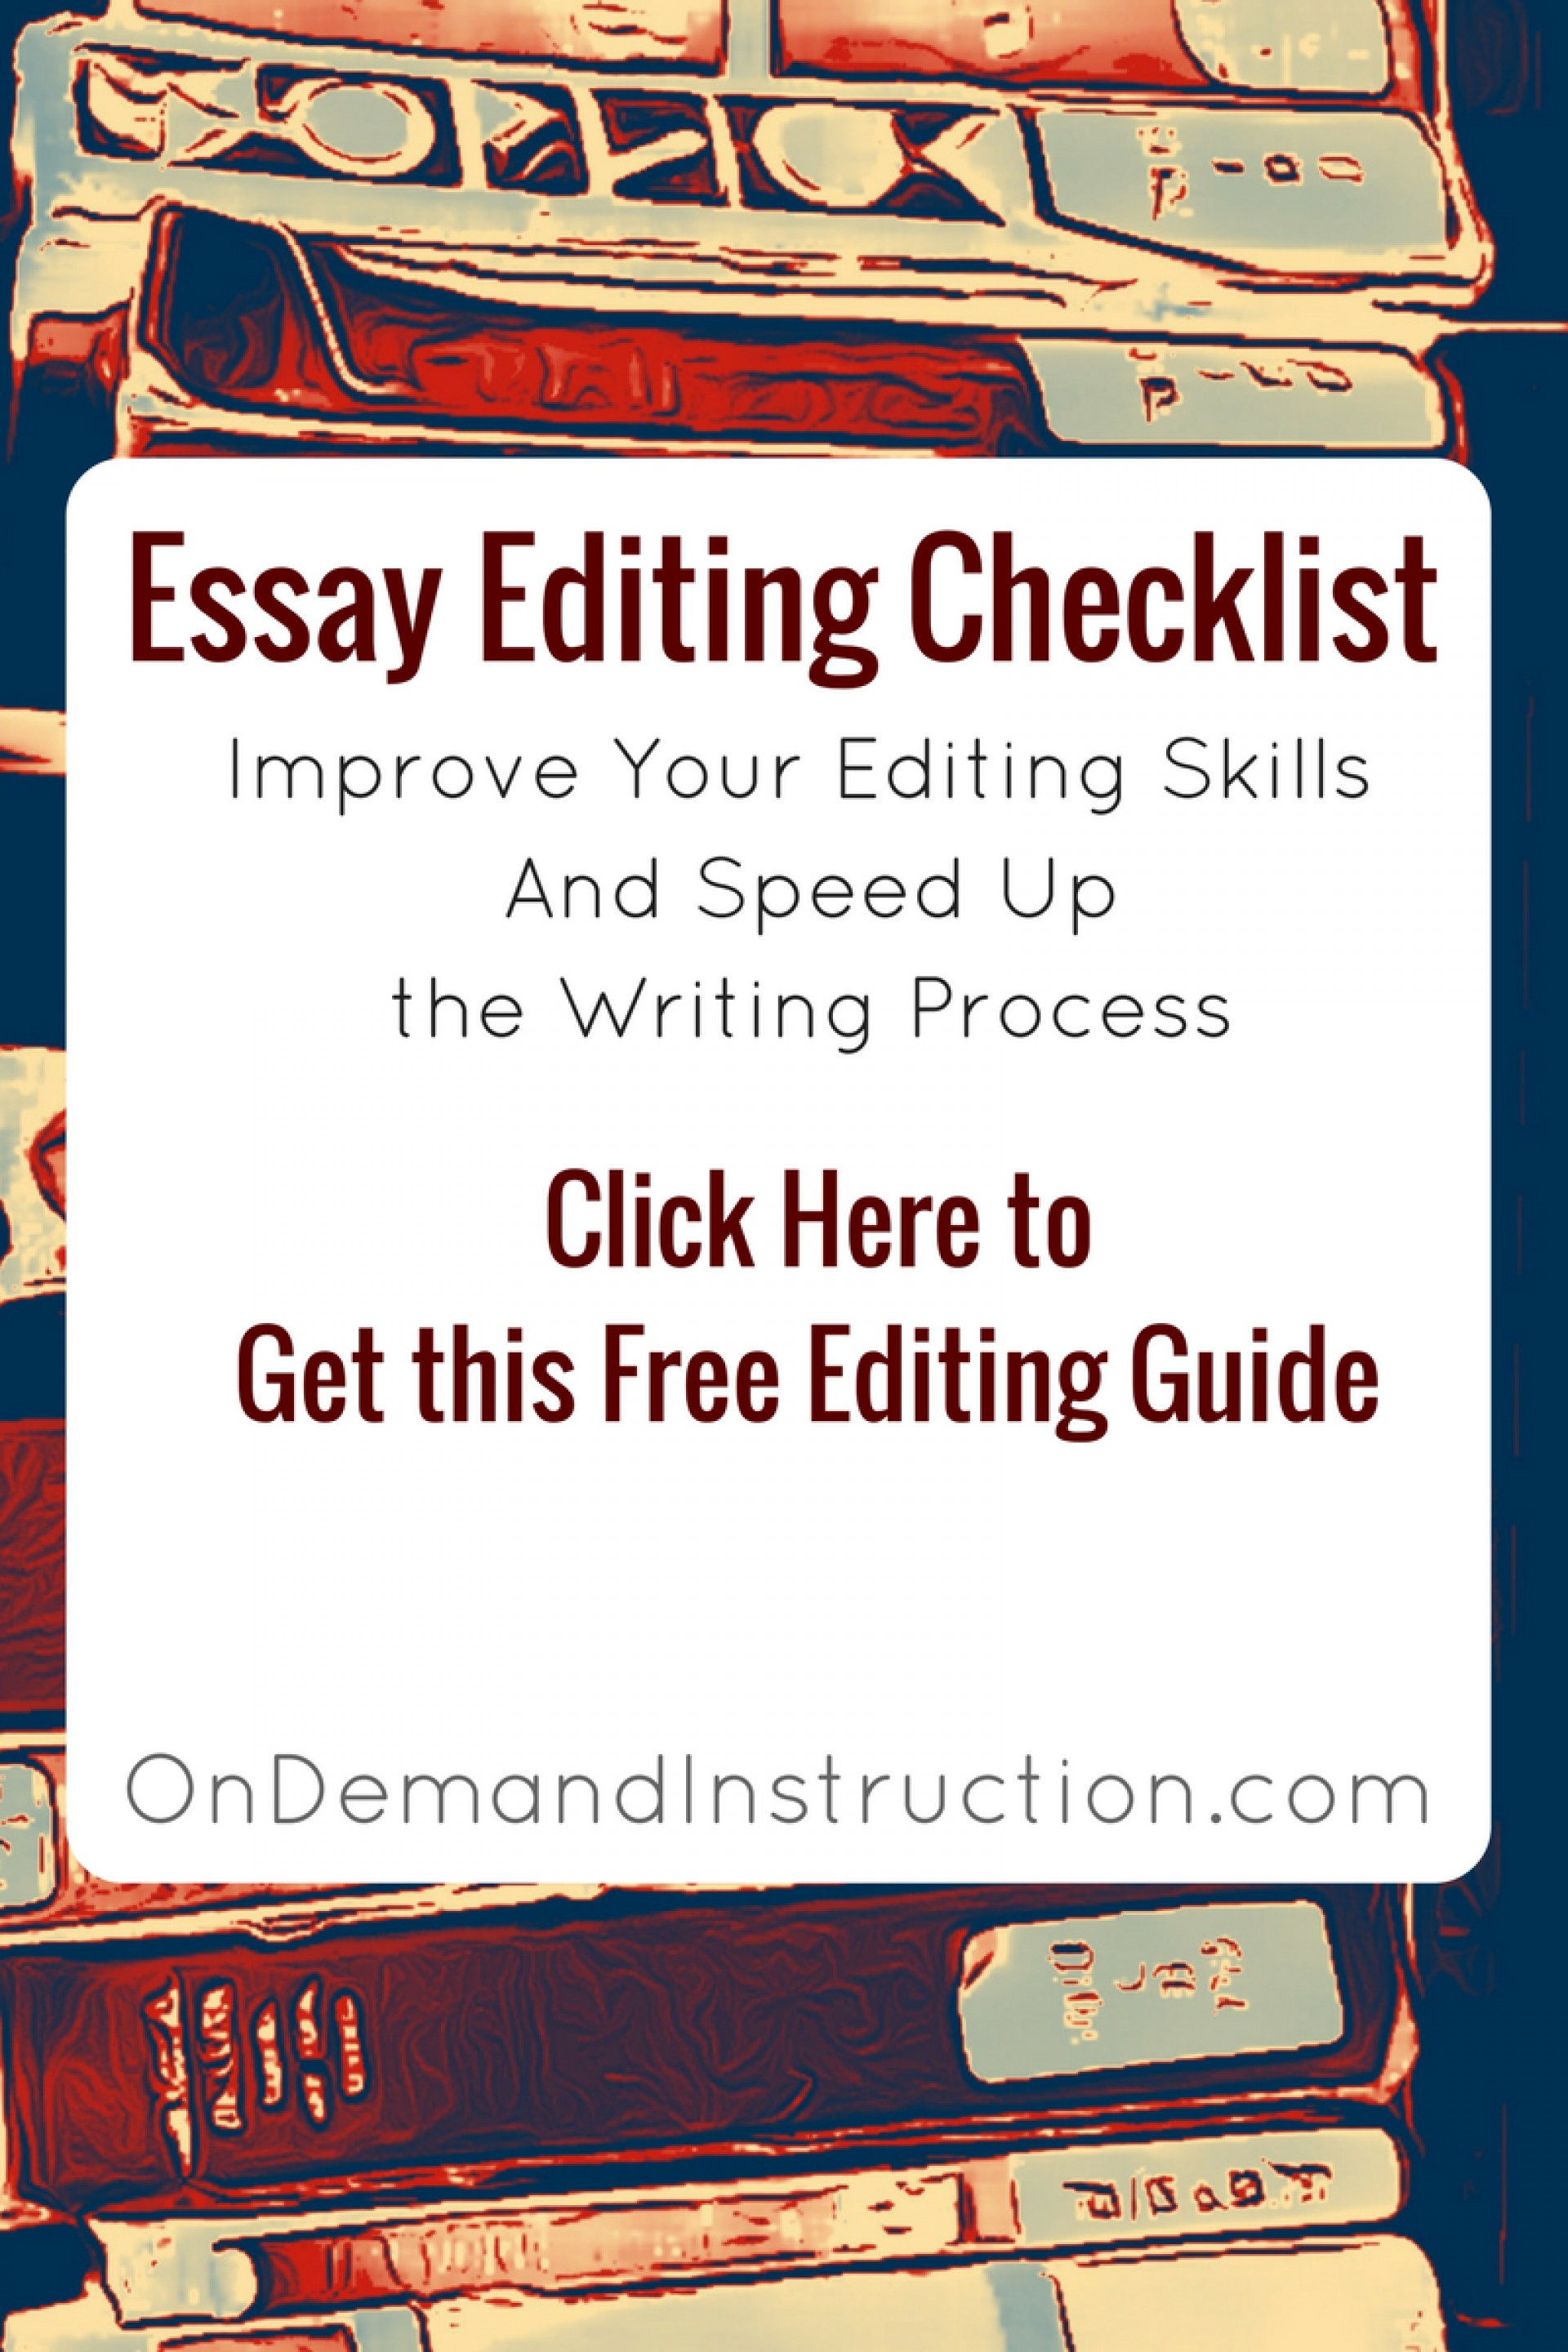 016 Free Online Essay Editor Rare Proofreading Software Ielts Correction 1920